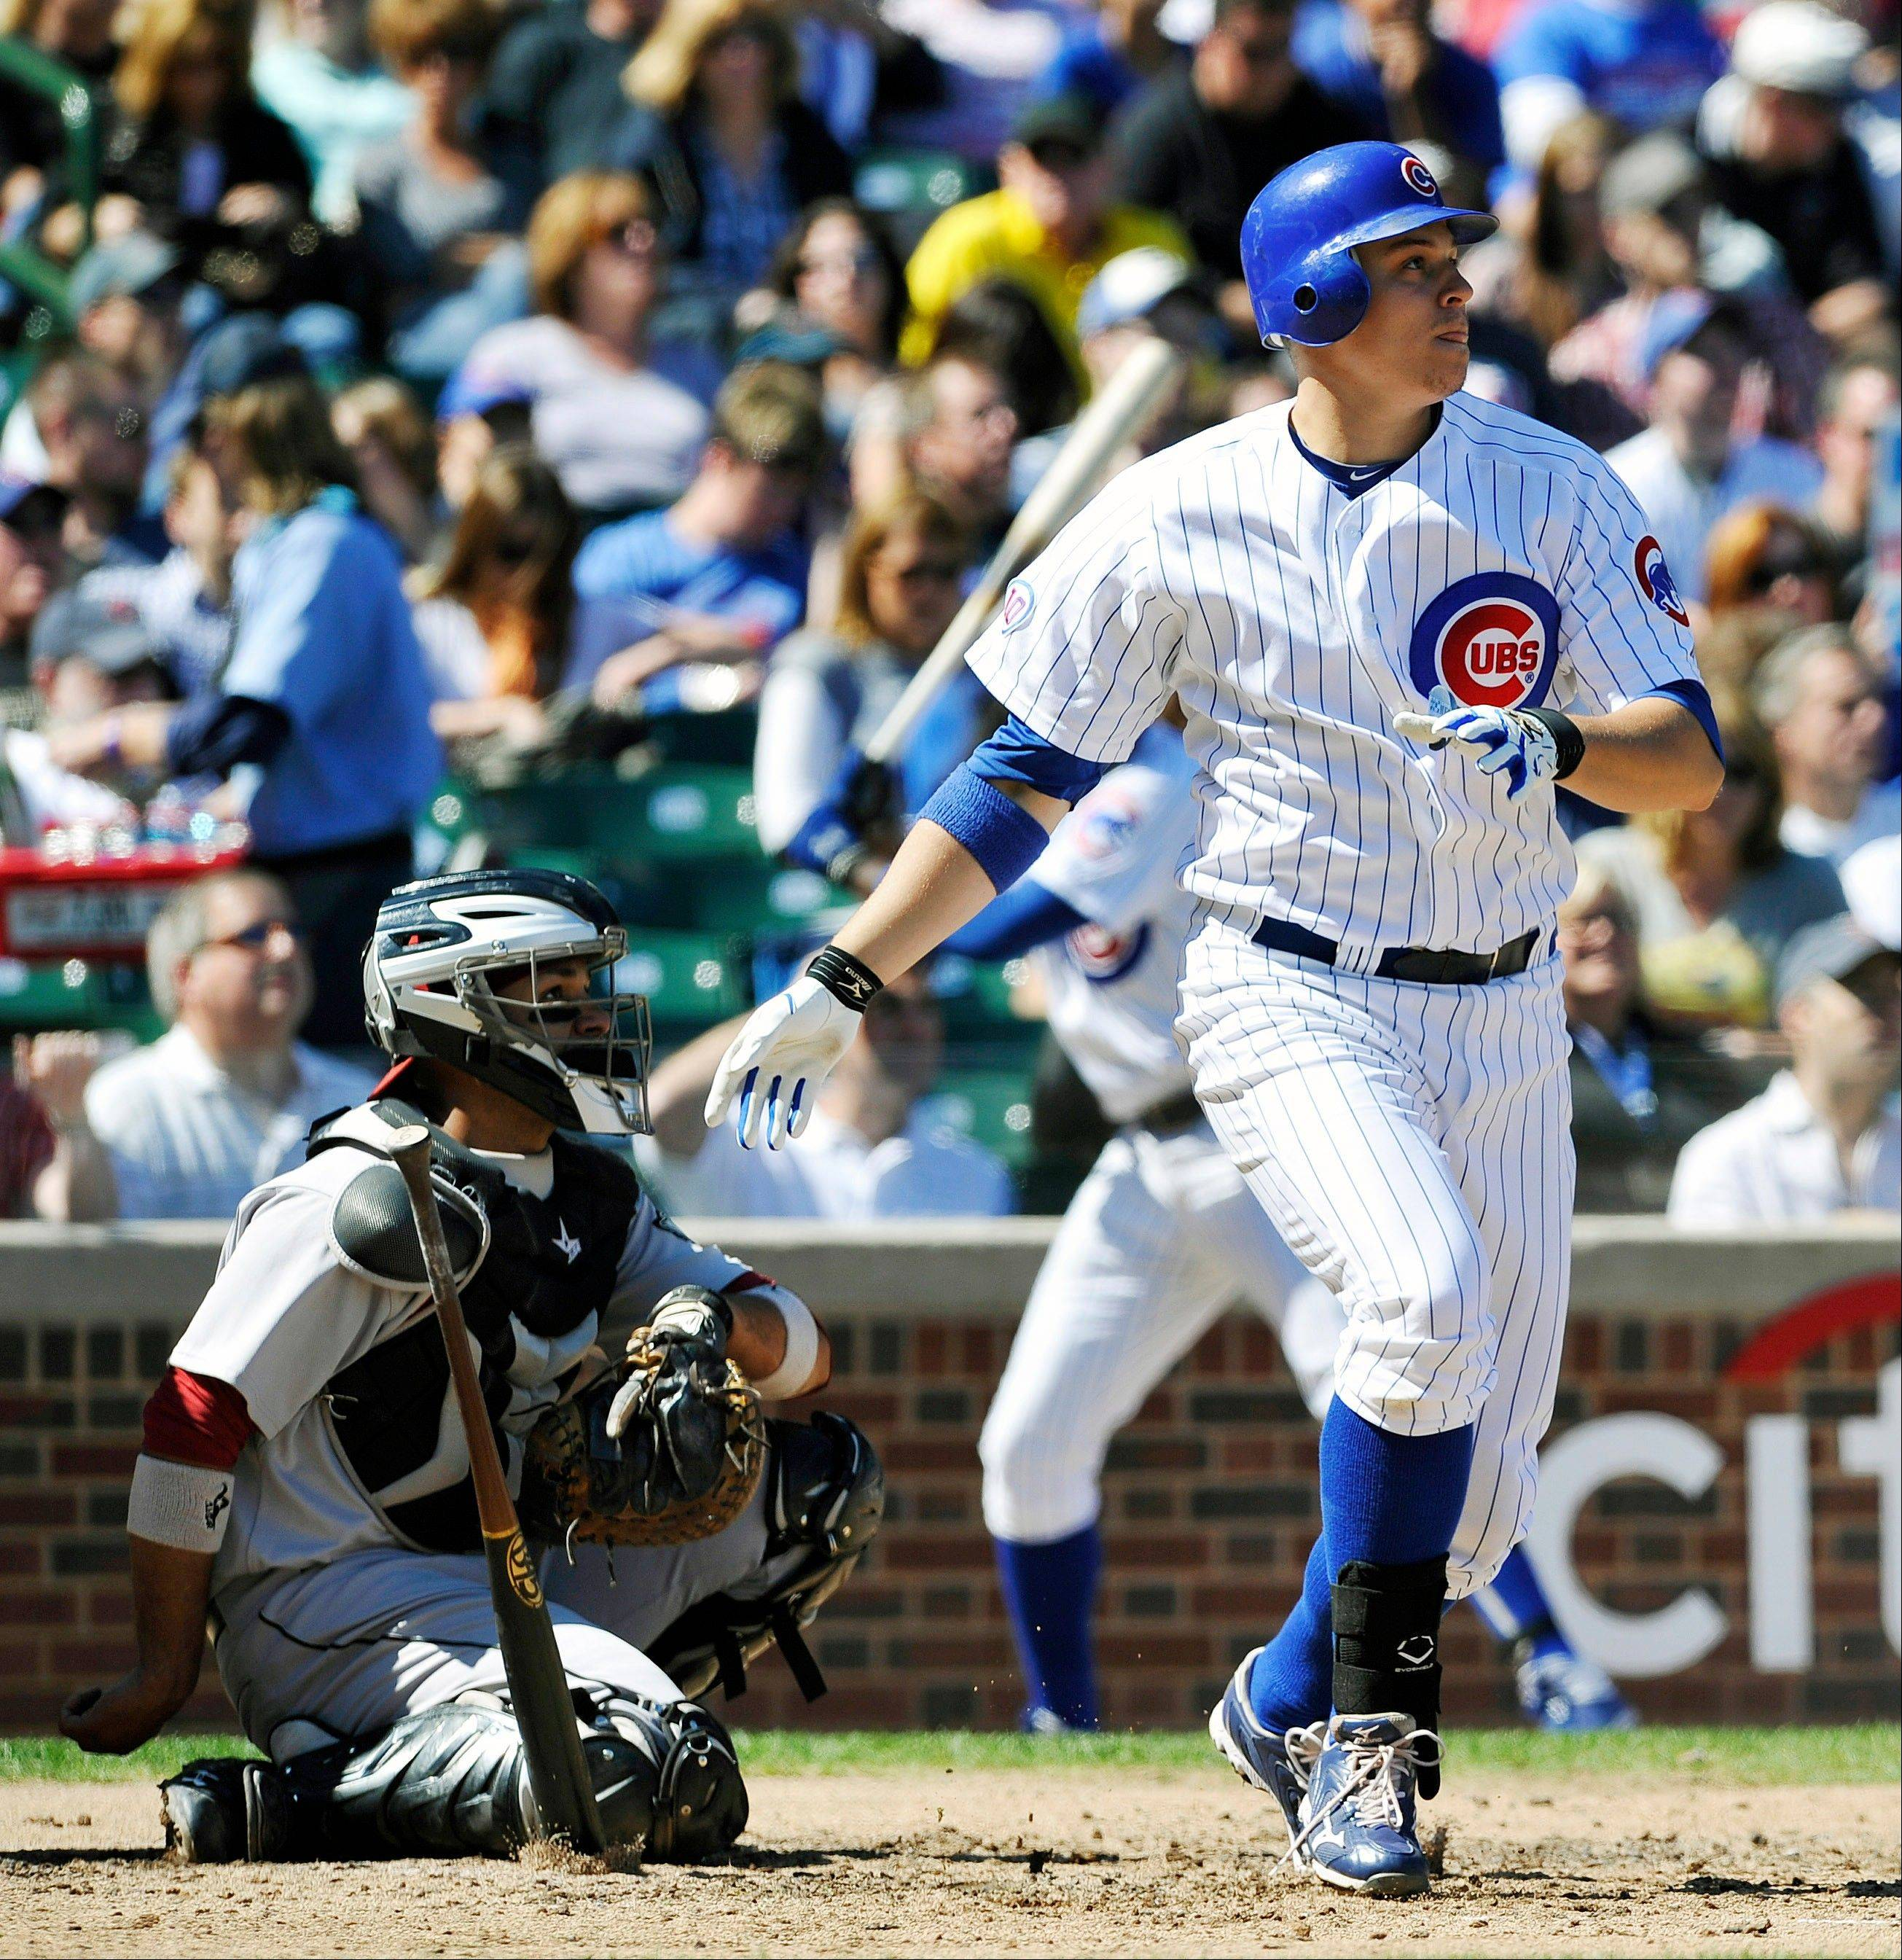 The Cubs have designated first baseman Bryan LaHair for assignment.